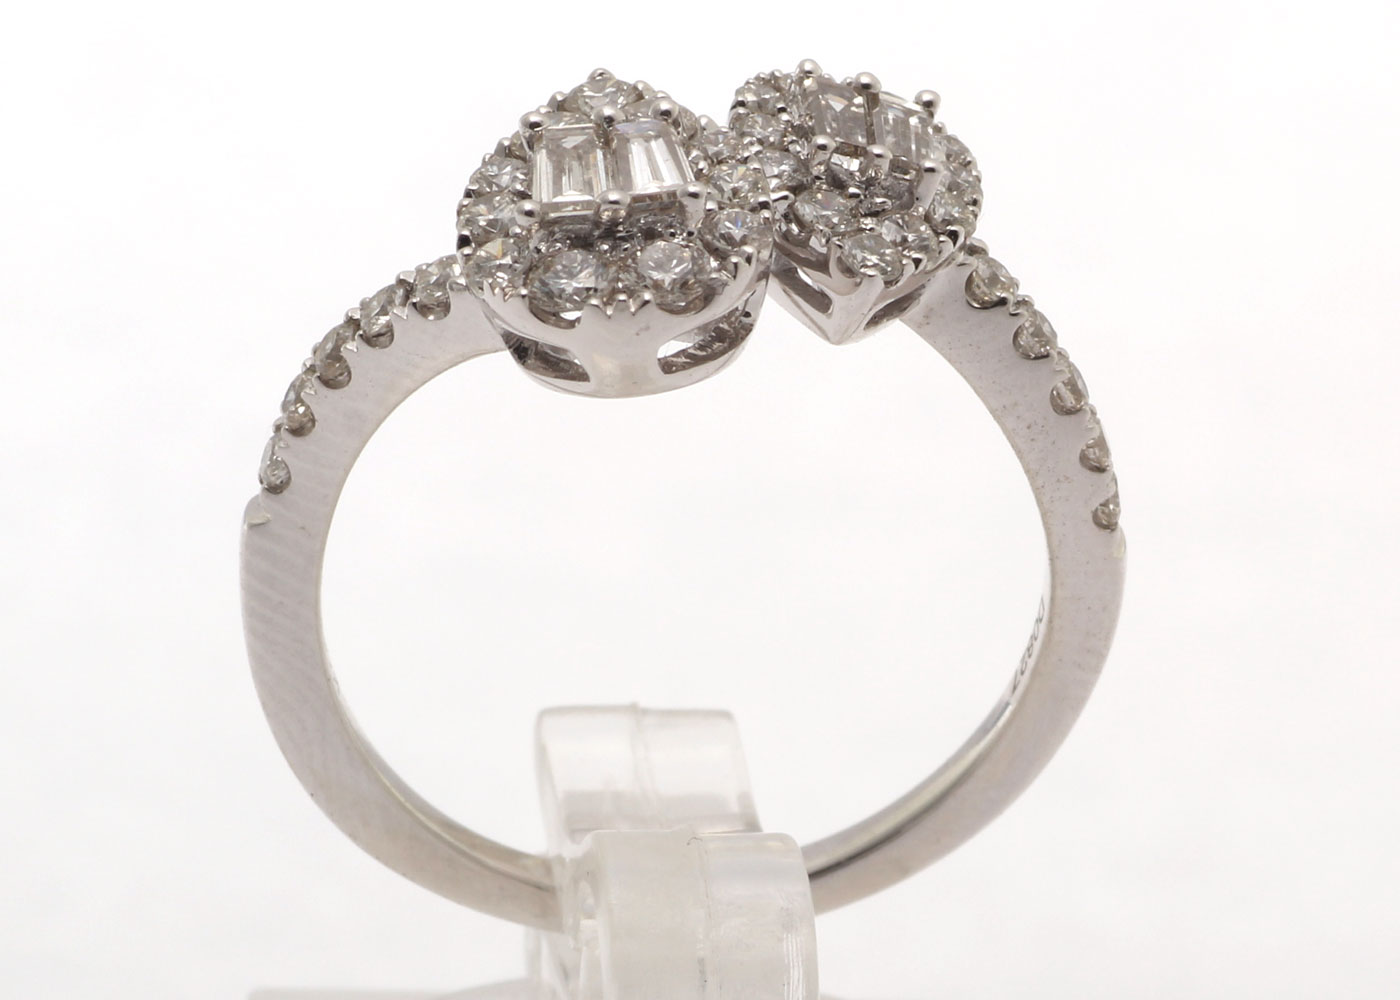 Lot 29 - 18ct White Gold Double Pear Shape Cluster Diamond Ring 0.83 Carats